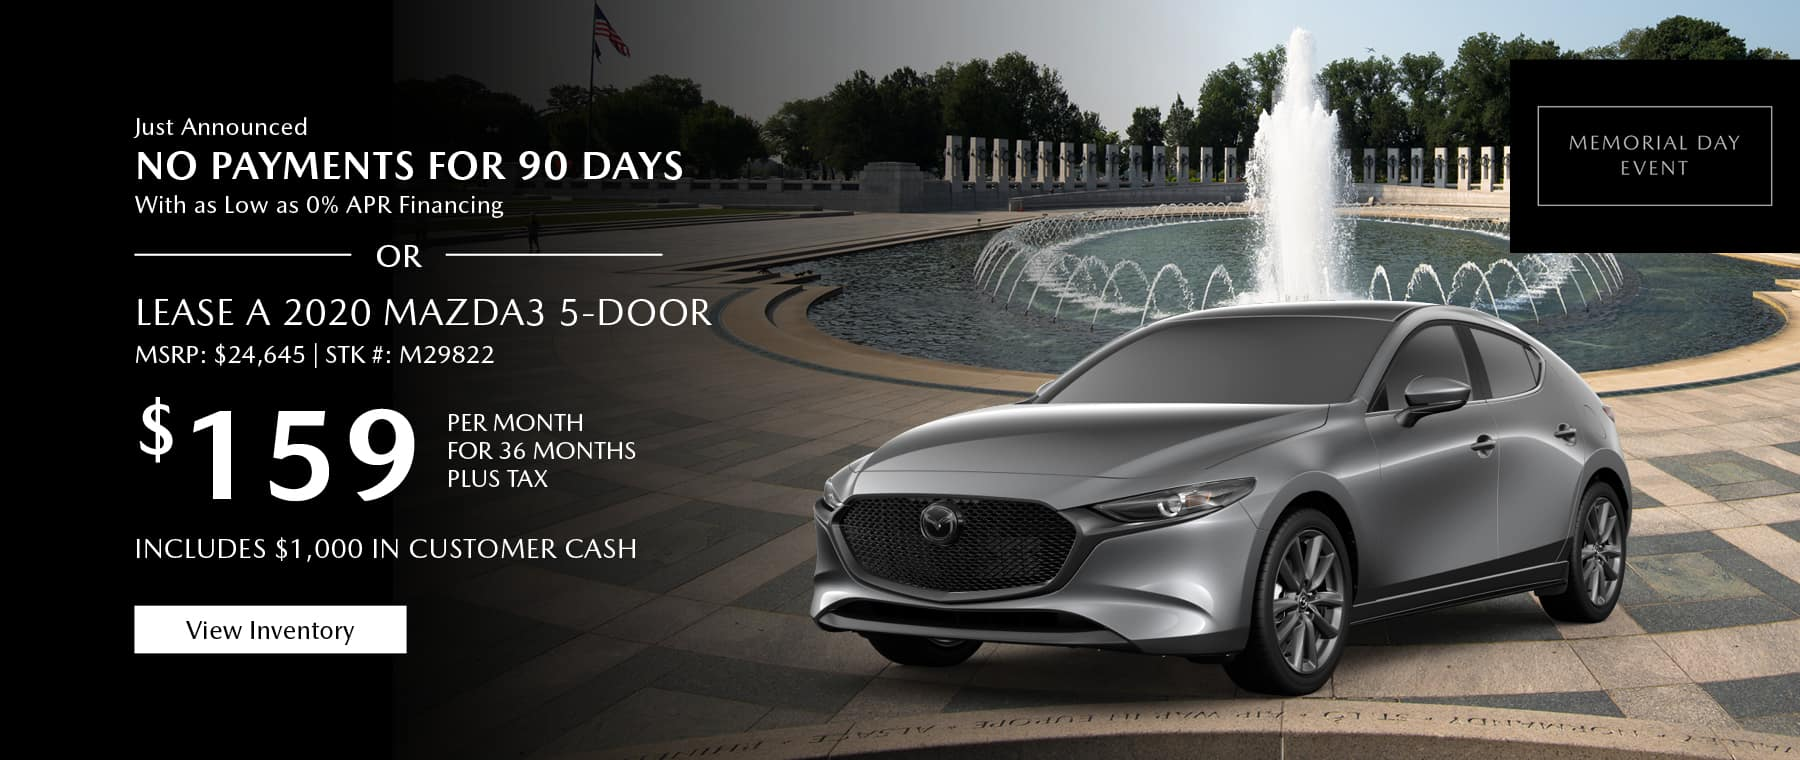 Just Announced, No payments for 90 days with as low as %0 APR financing, or lease the 2020 Mazda3 hatchback for $149 per month, plus tax. Gunther will waive your first 2 lease payments. View inventory.